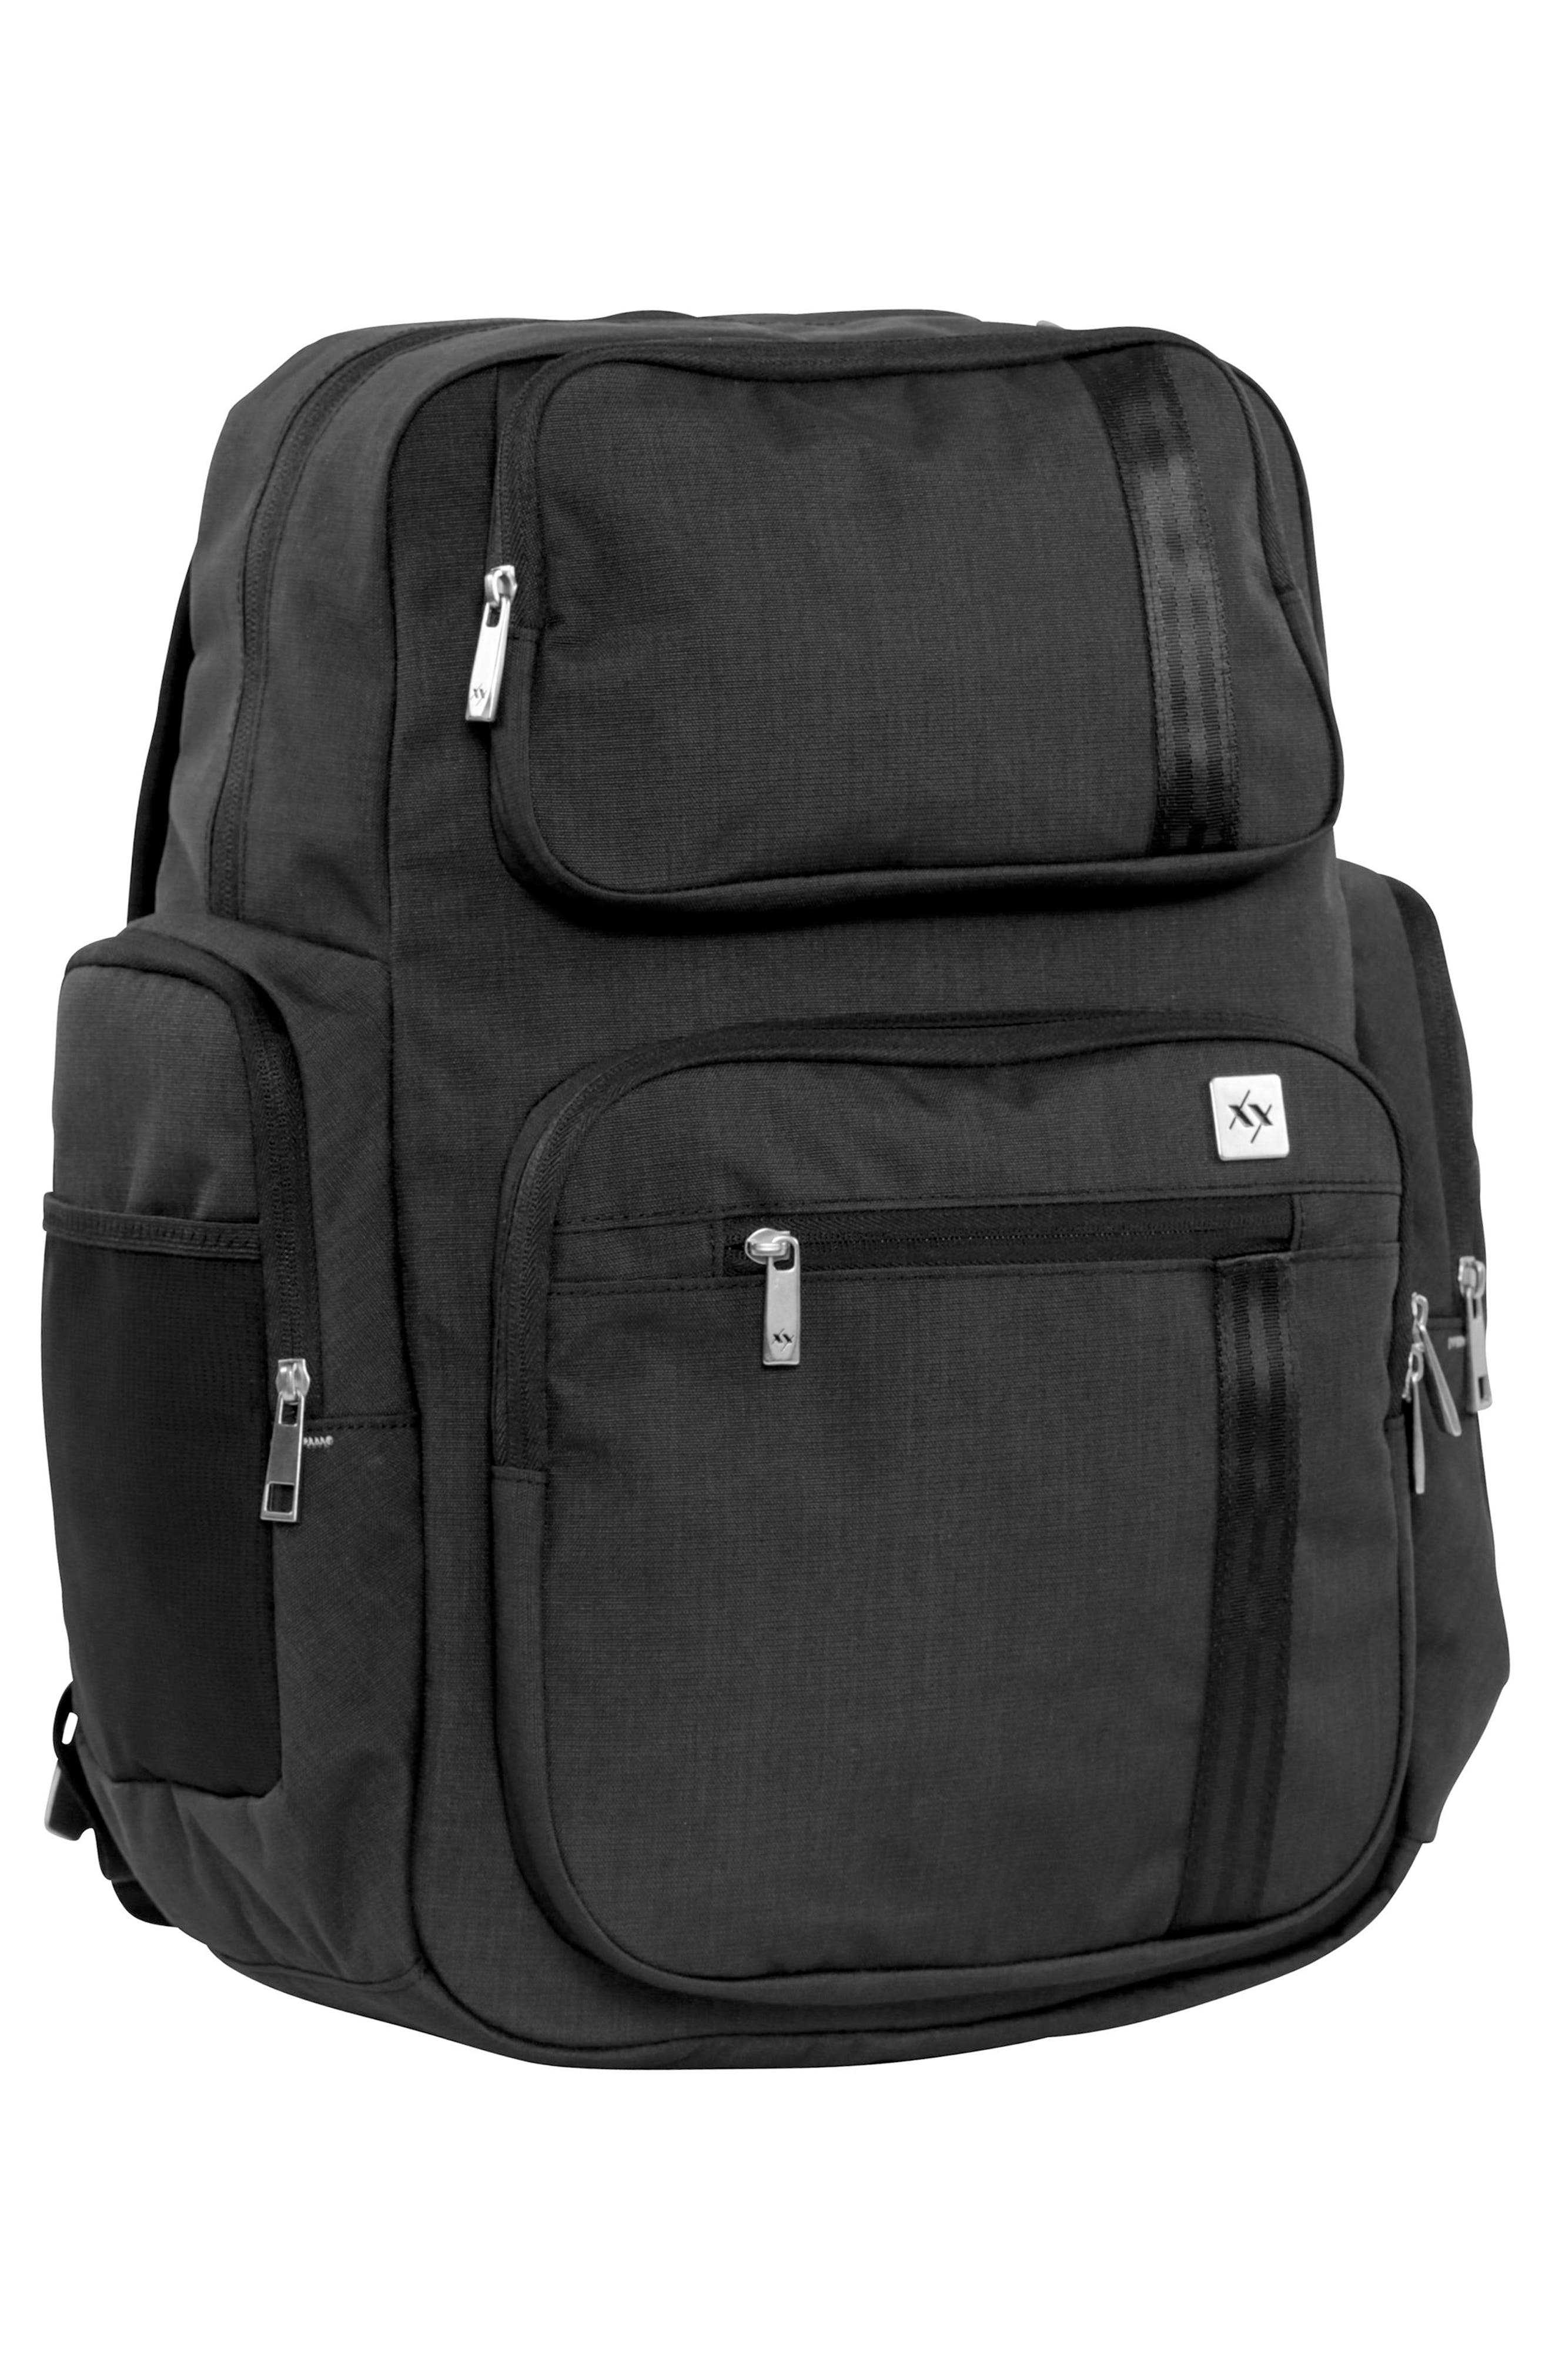 XY Vector Diaper Backpack,                             Alternate thumbnail 4, color,                             Carbon